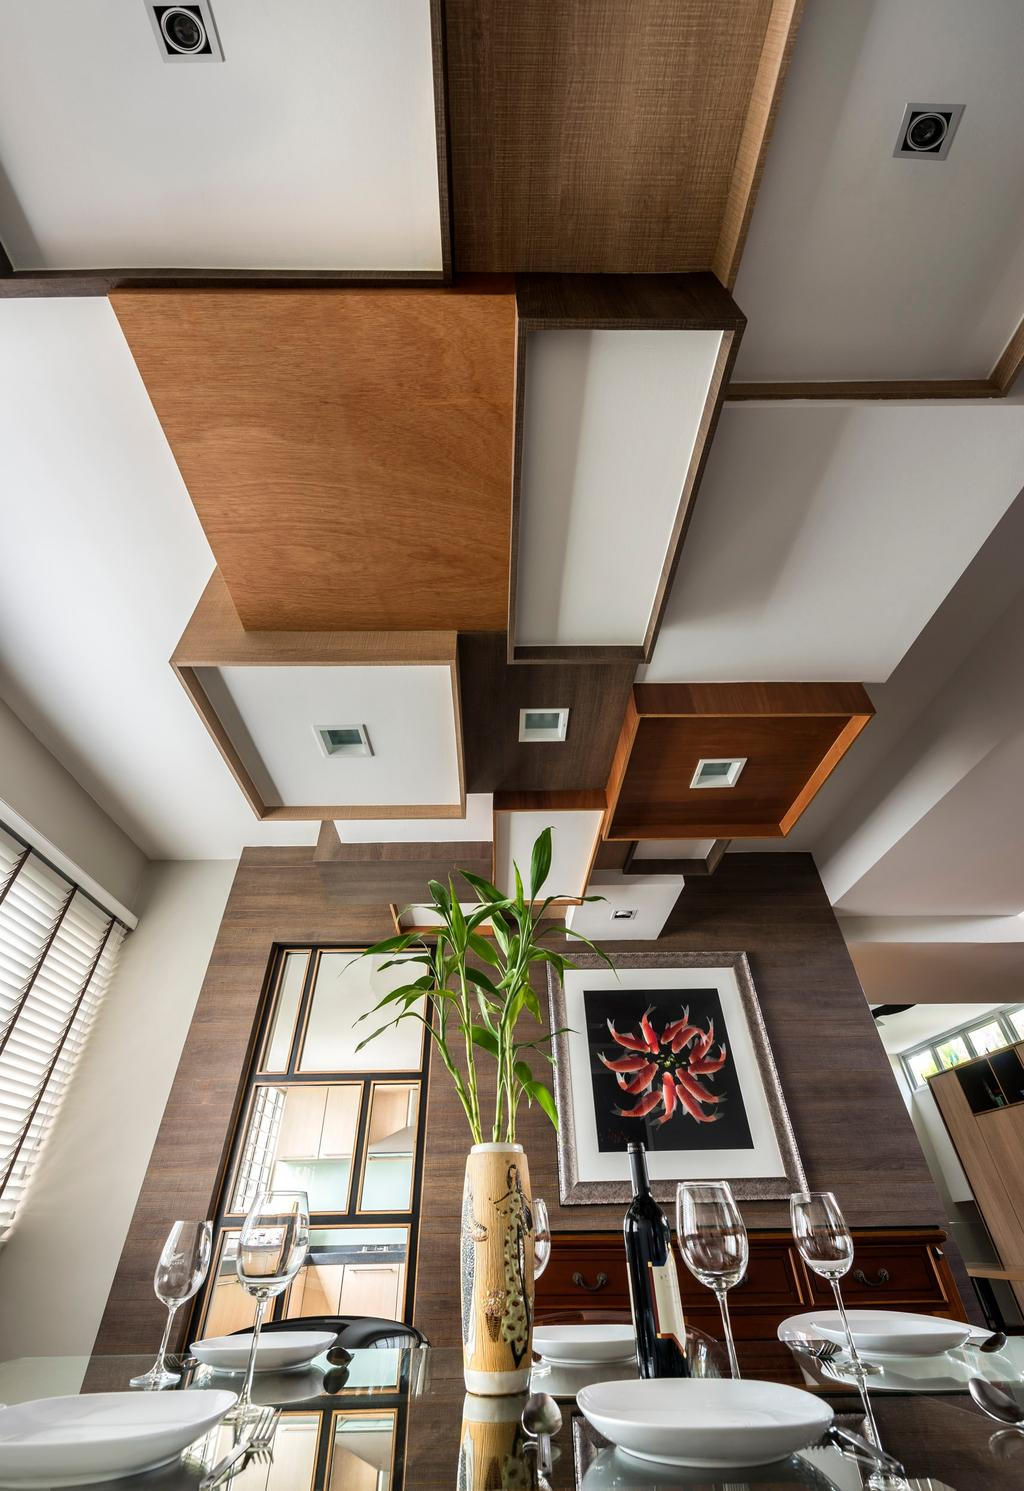 Eclectic, Condo, Dining Room, Pandan Valley, Interior Designer, Prozfile Design, Wooden Ceiling, Glass Dining Table, Glass Table, Venetian Blinds, Blinds, Wallart, Wall Painting, Wooden Wal, Flora, Jar, Plant, Potted Plant, Pottery, Vase, Banister, Handrail, Staircase